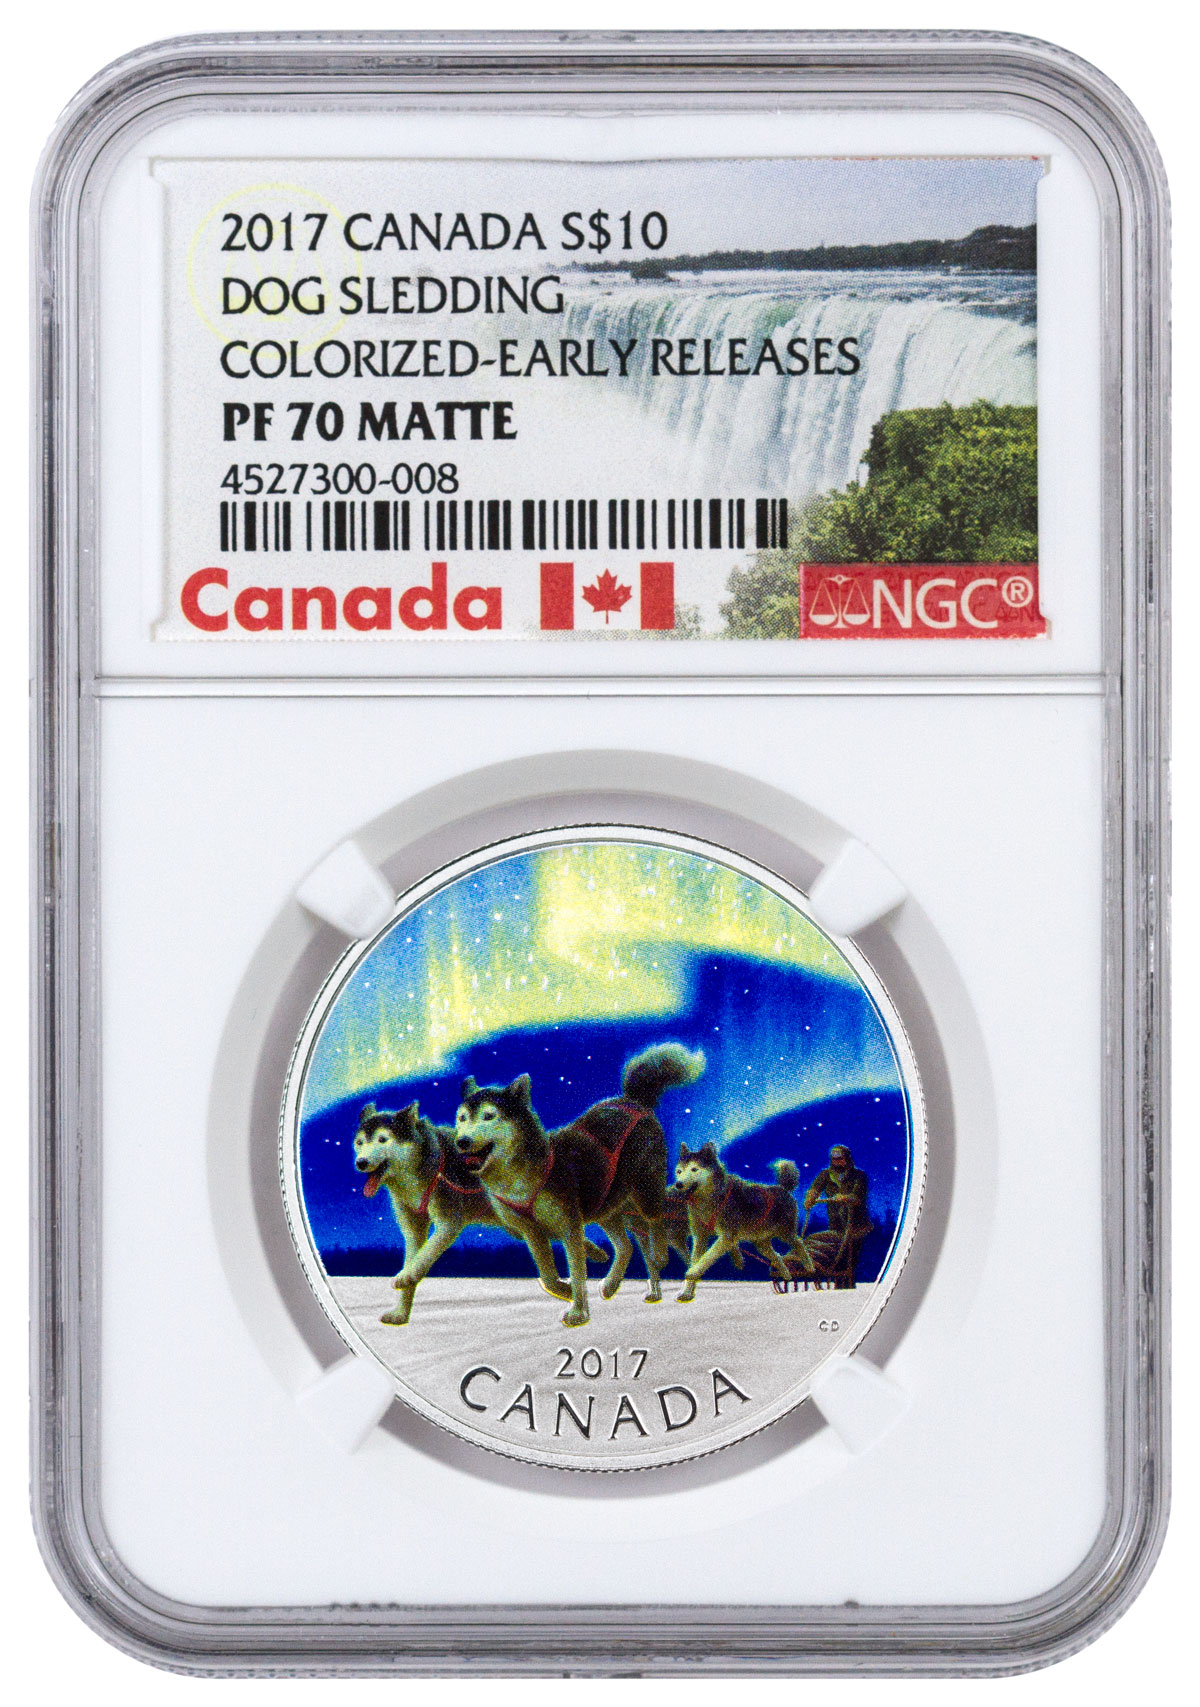 2017 Canada Iconic Canada - Dog Sledding Under the Northern Lights 1/2 oz Silver Colorized Matte Proof $10 Coin NGC PF70 ER (Exclusive Canada Label)